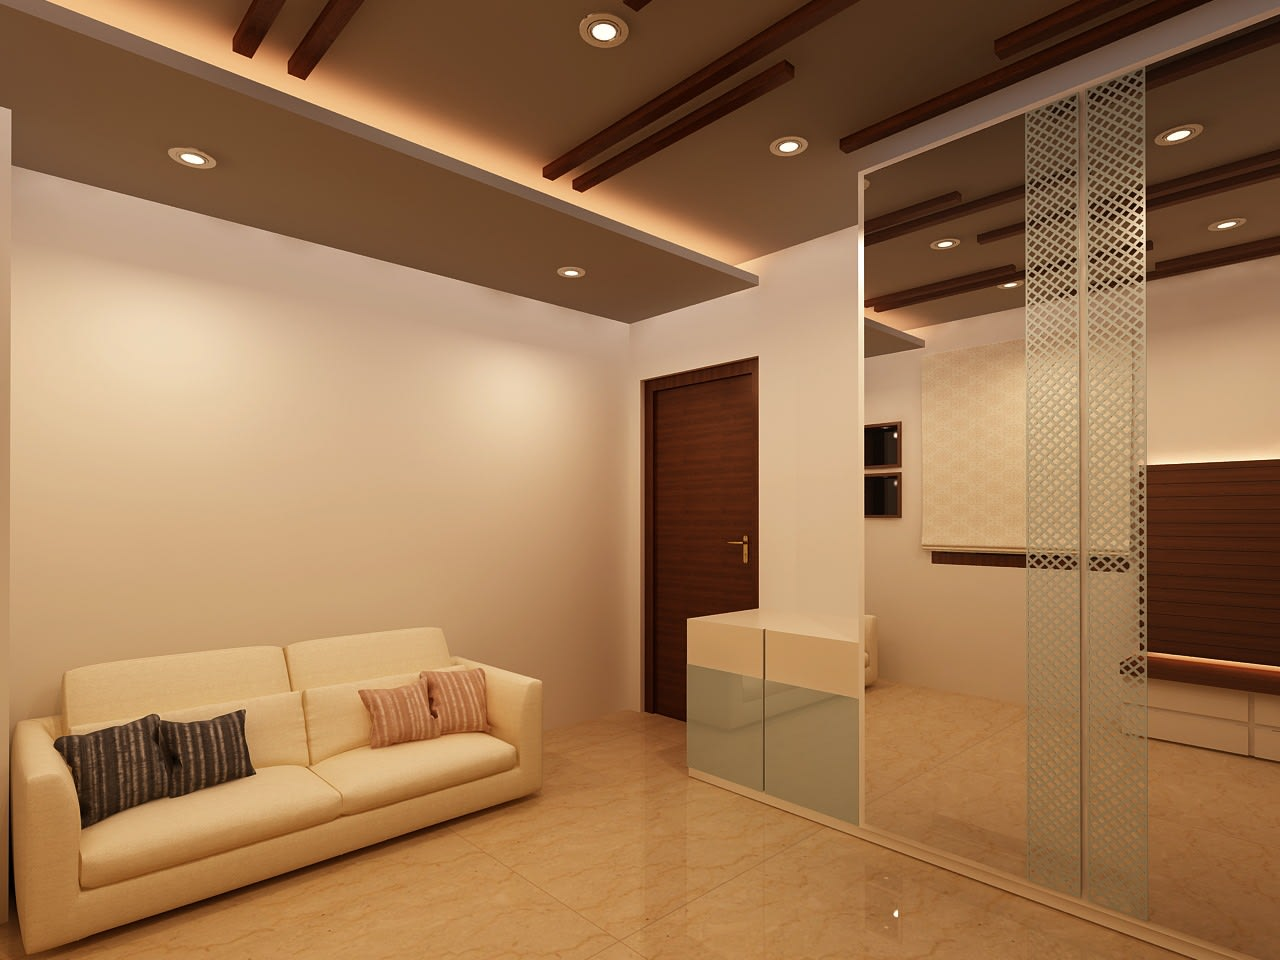 A simple living area! by Mohammad Riyaz Living-room Minimalistic | Interior Design Photos & Ideas